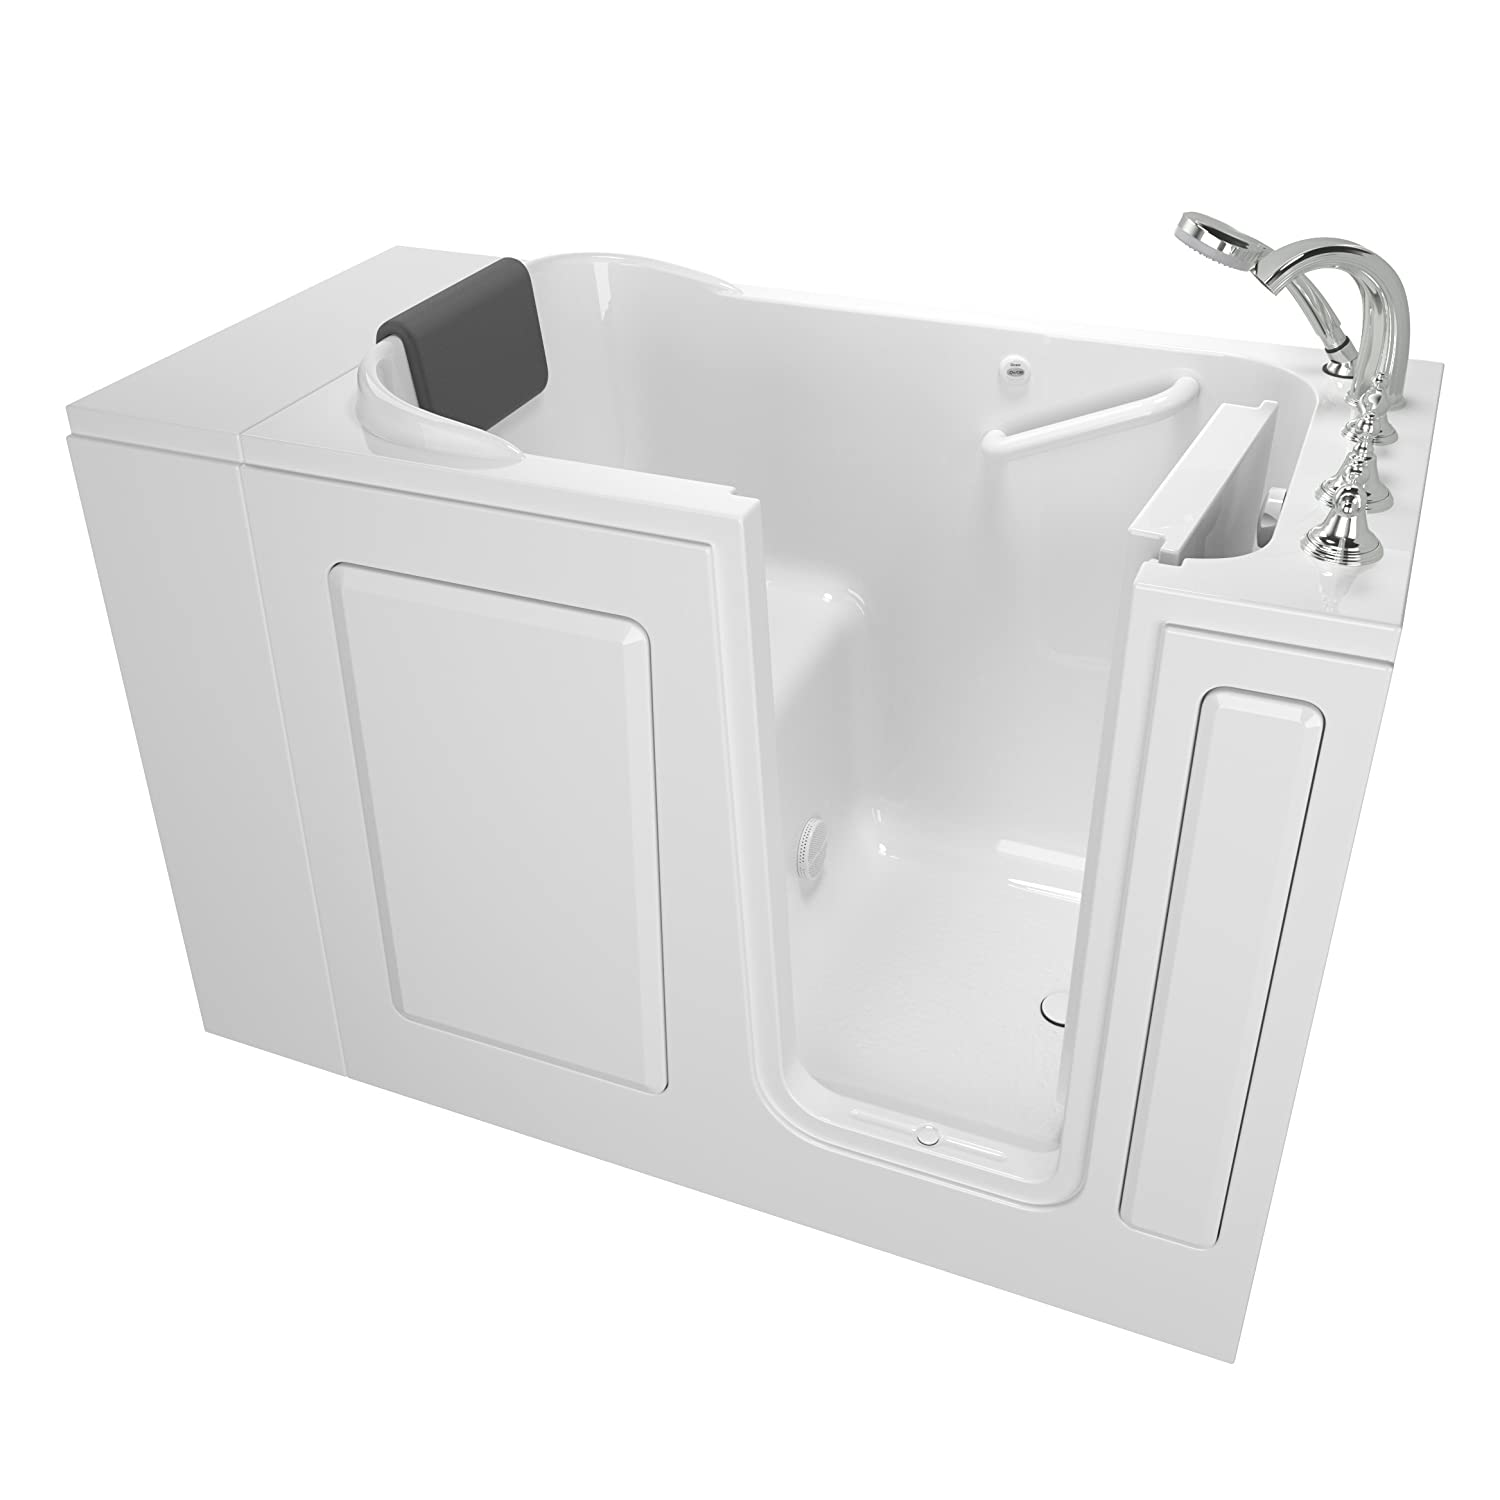 4.American Standard Premium Series Walk-in Bath